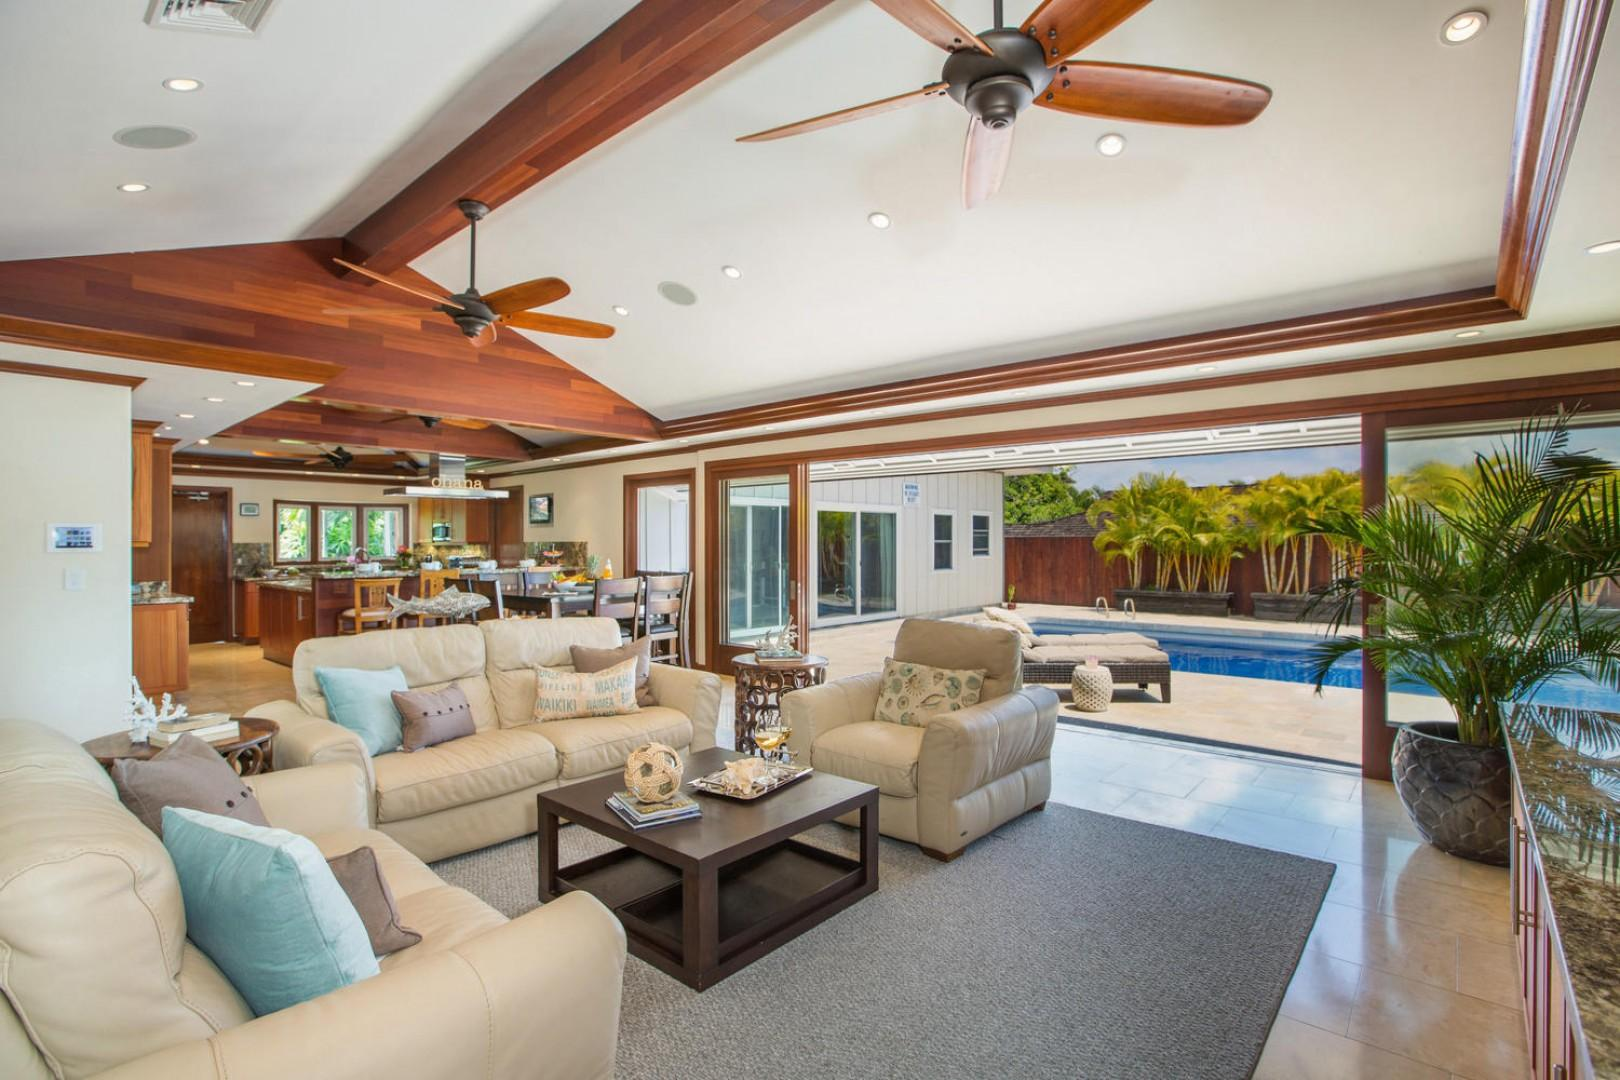 Main living room and kitchen with natural travertine stone, cherry wood throughout, and luxurious lighting details.